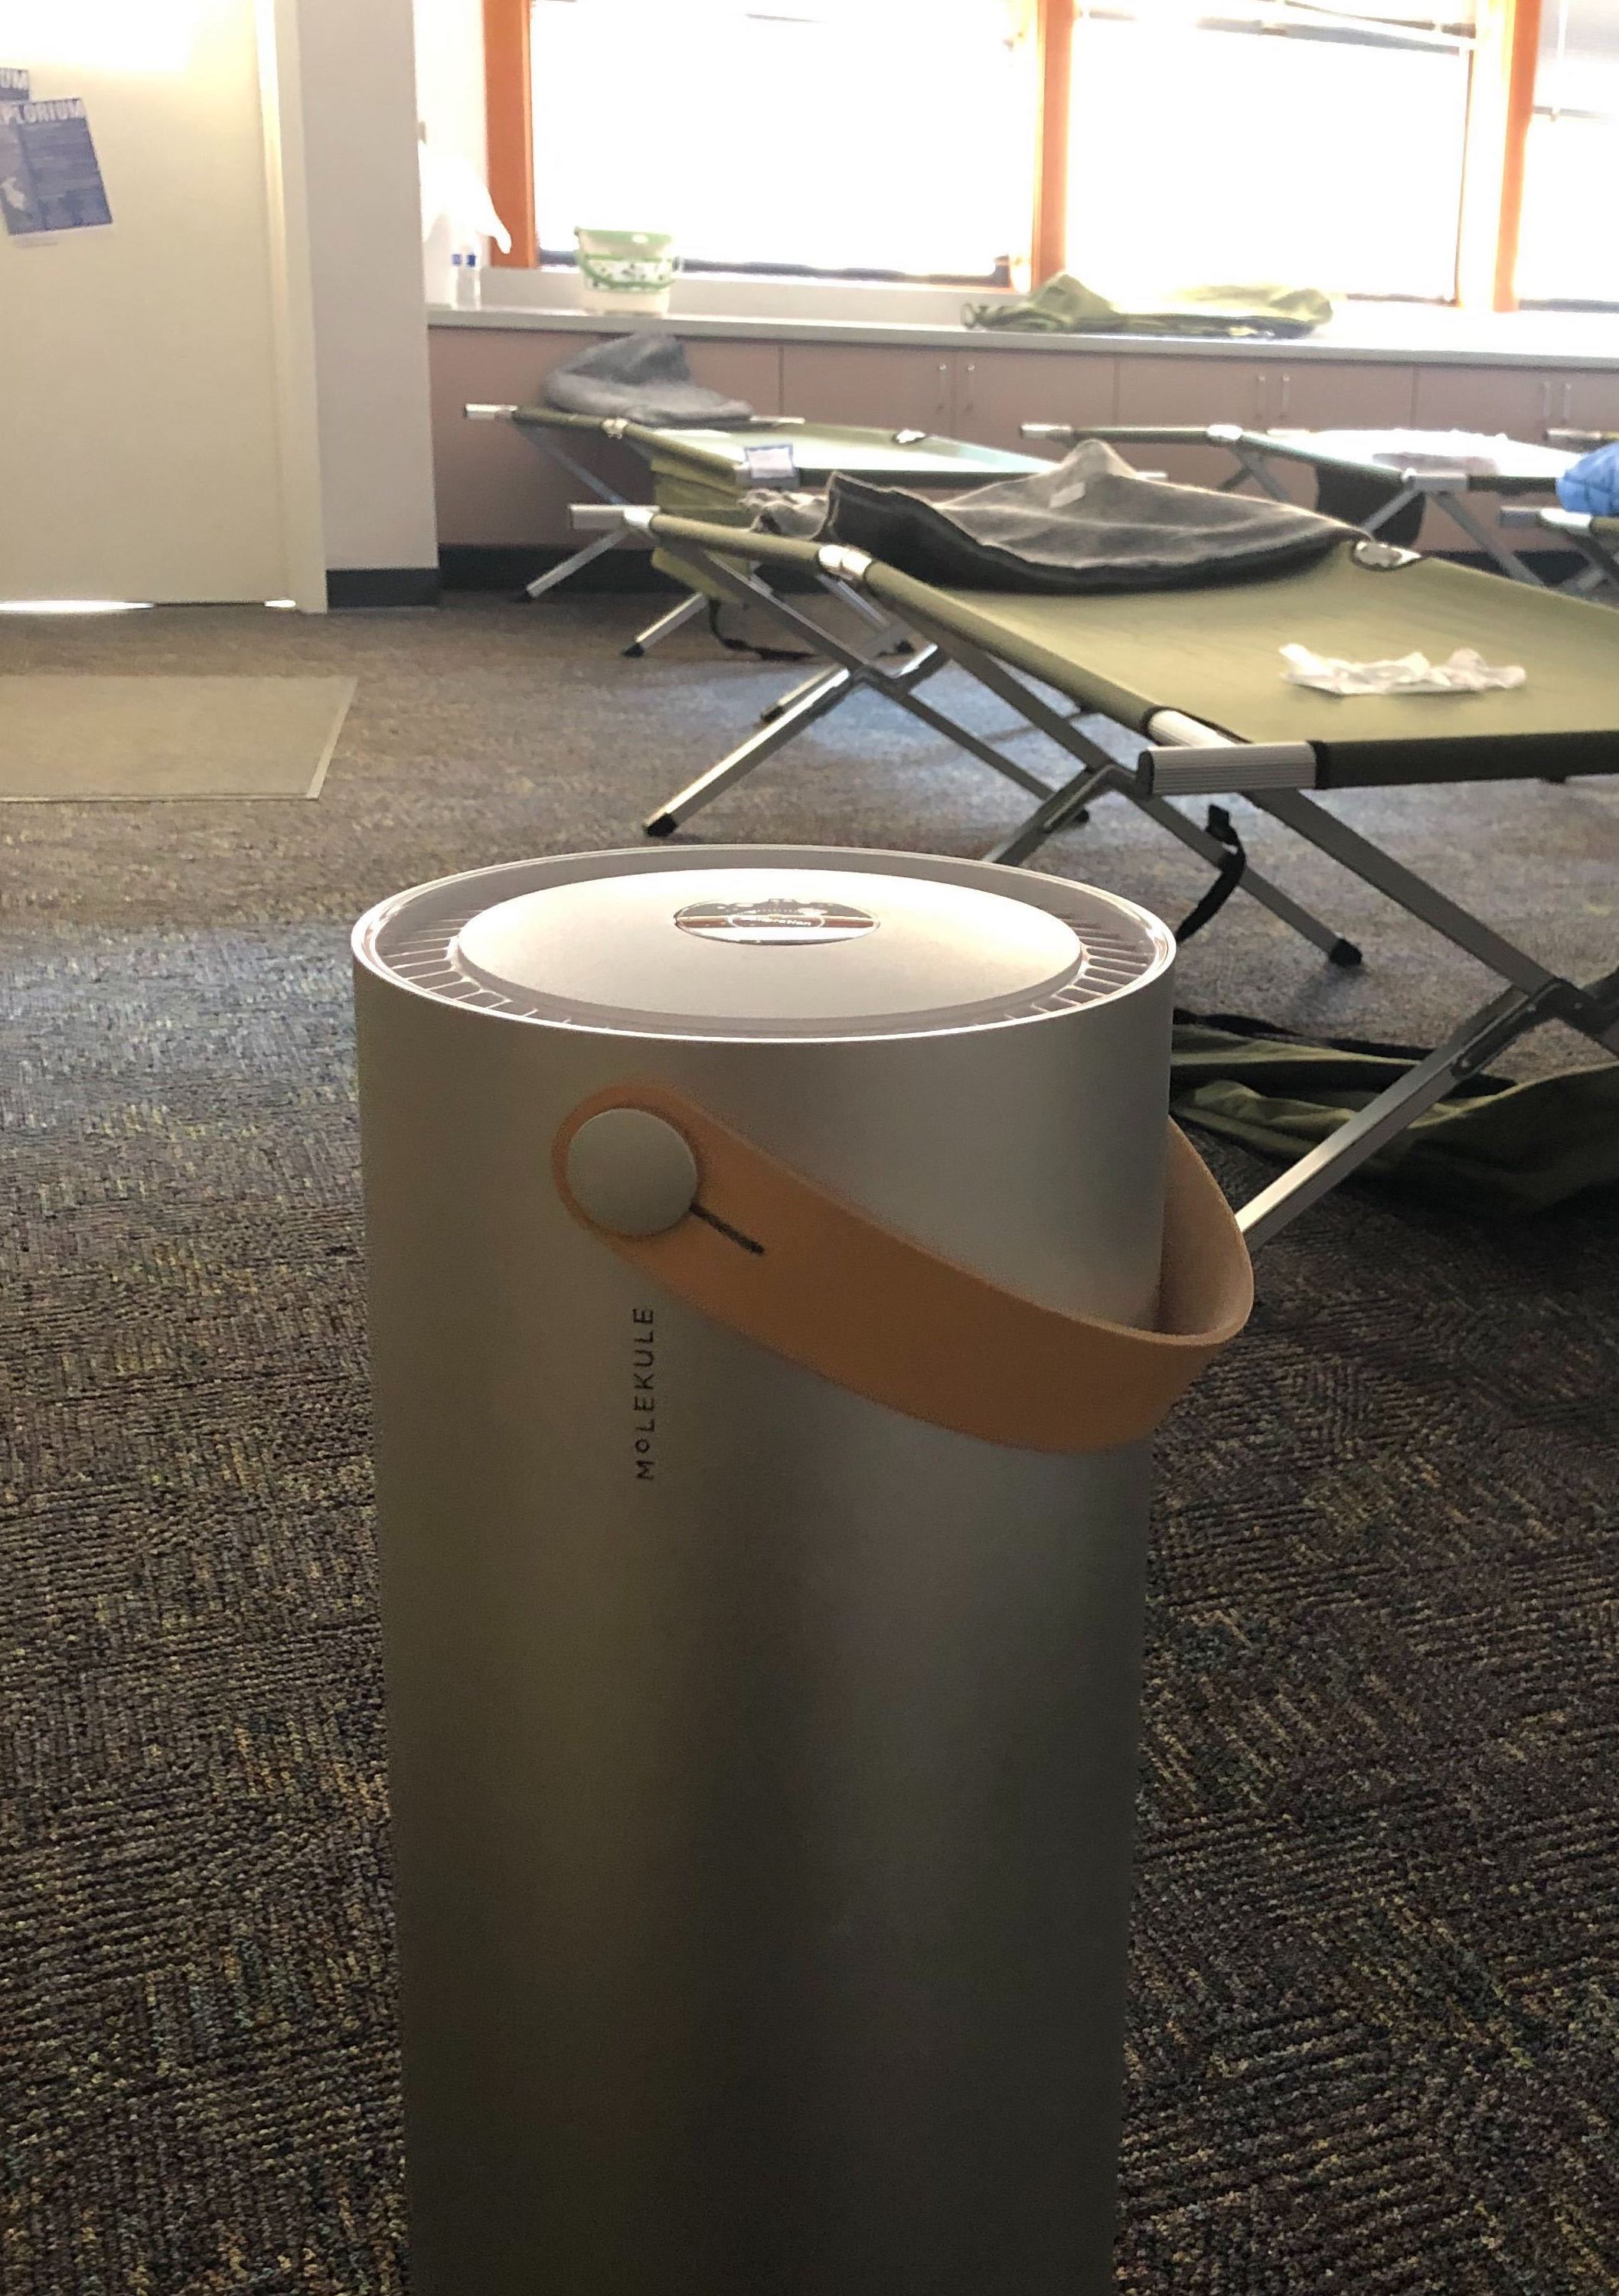 Molekule air purifier at evacuation center of Kincade fire.